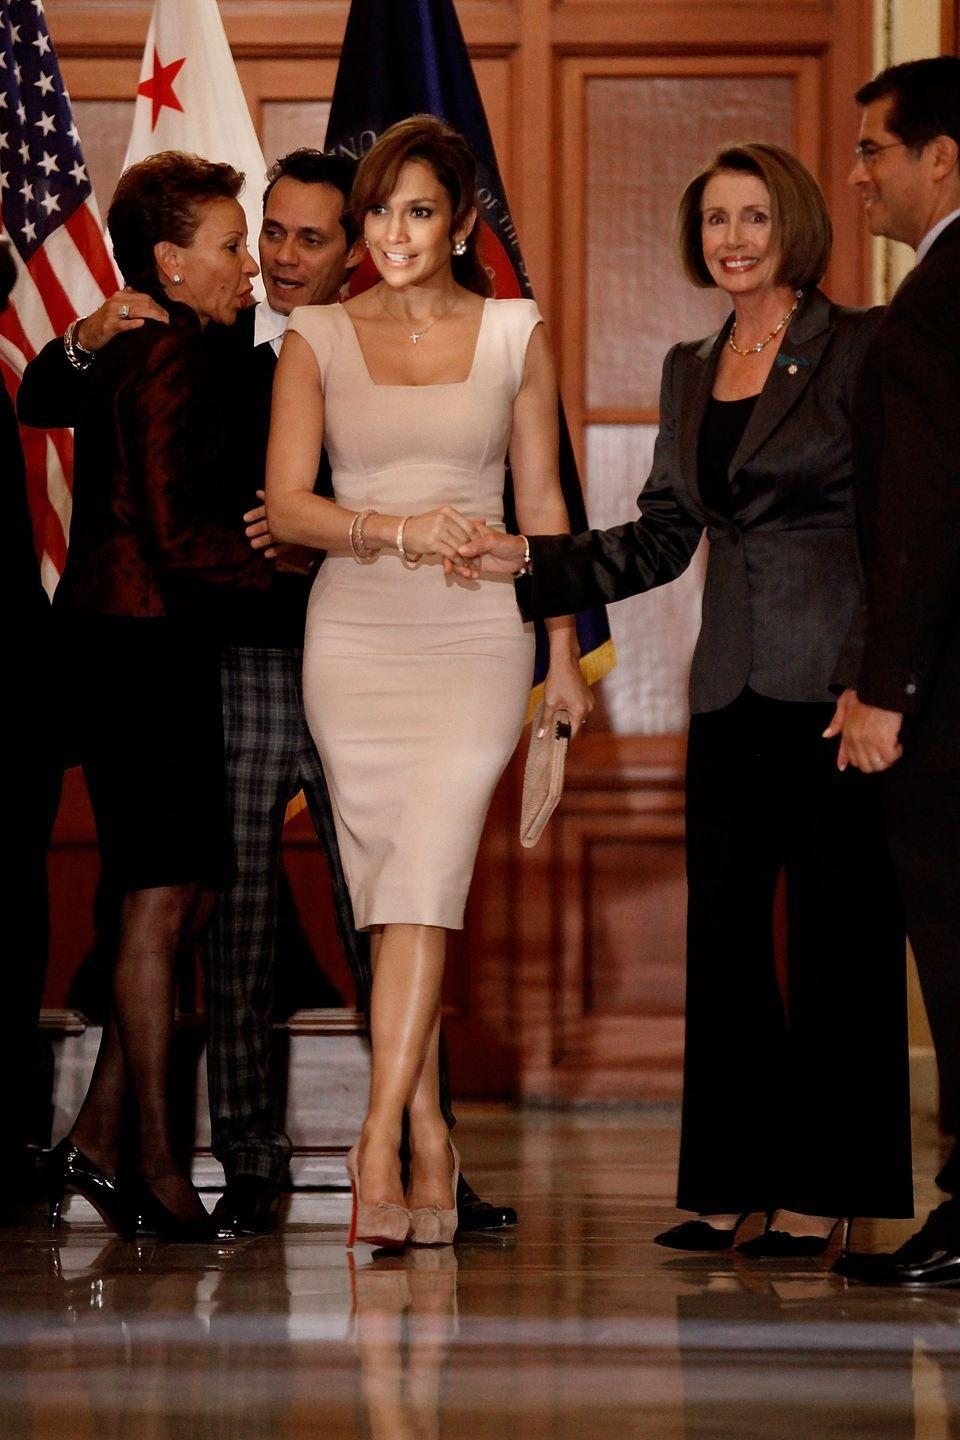 <p>Pelosi meets with Jennifer Lopez at the U.S. Capitol to discuss education in the Latino community.</p>